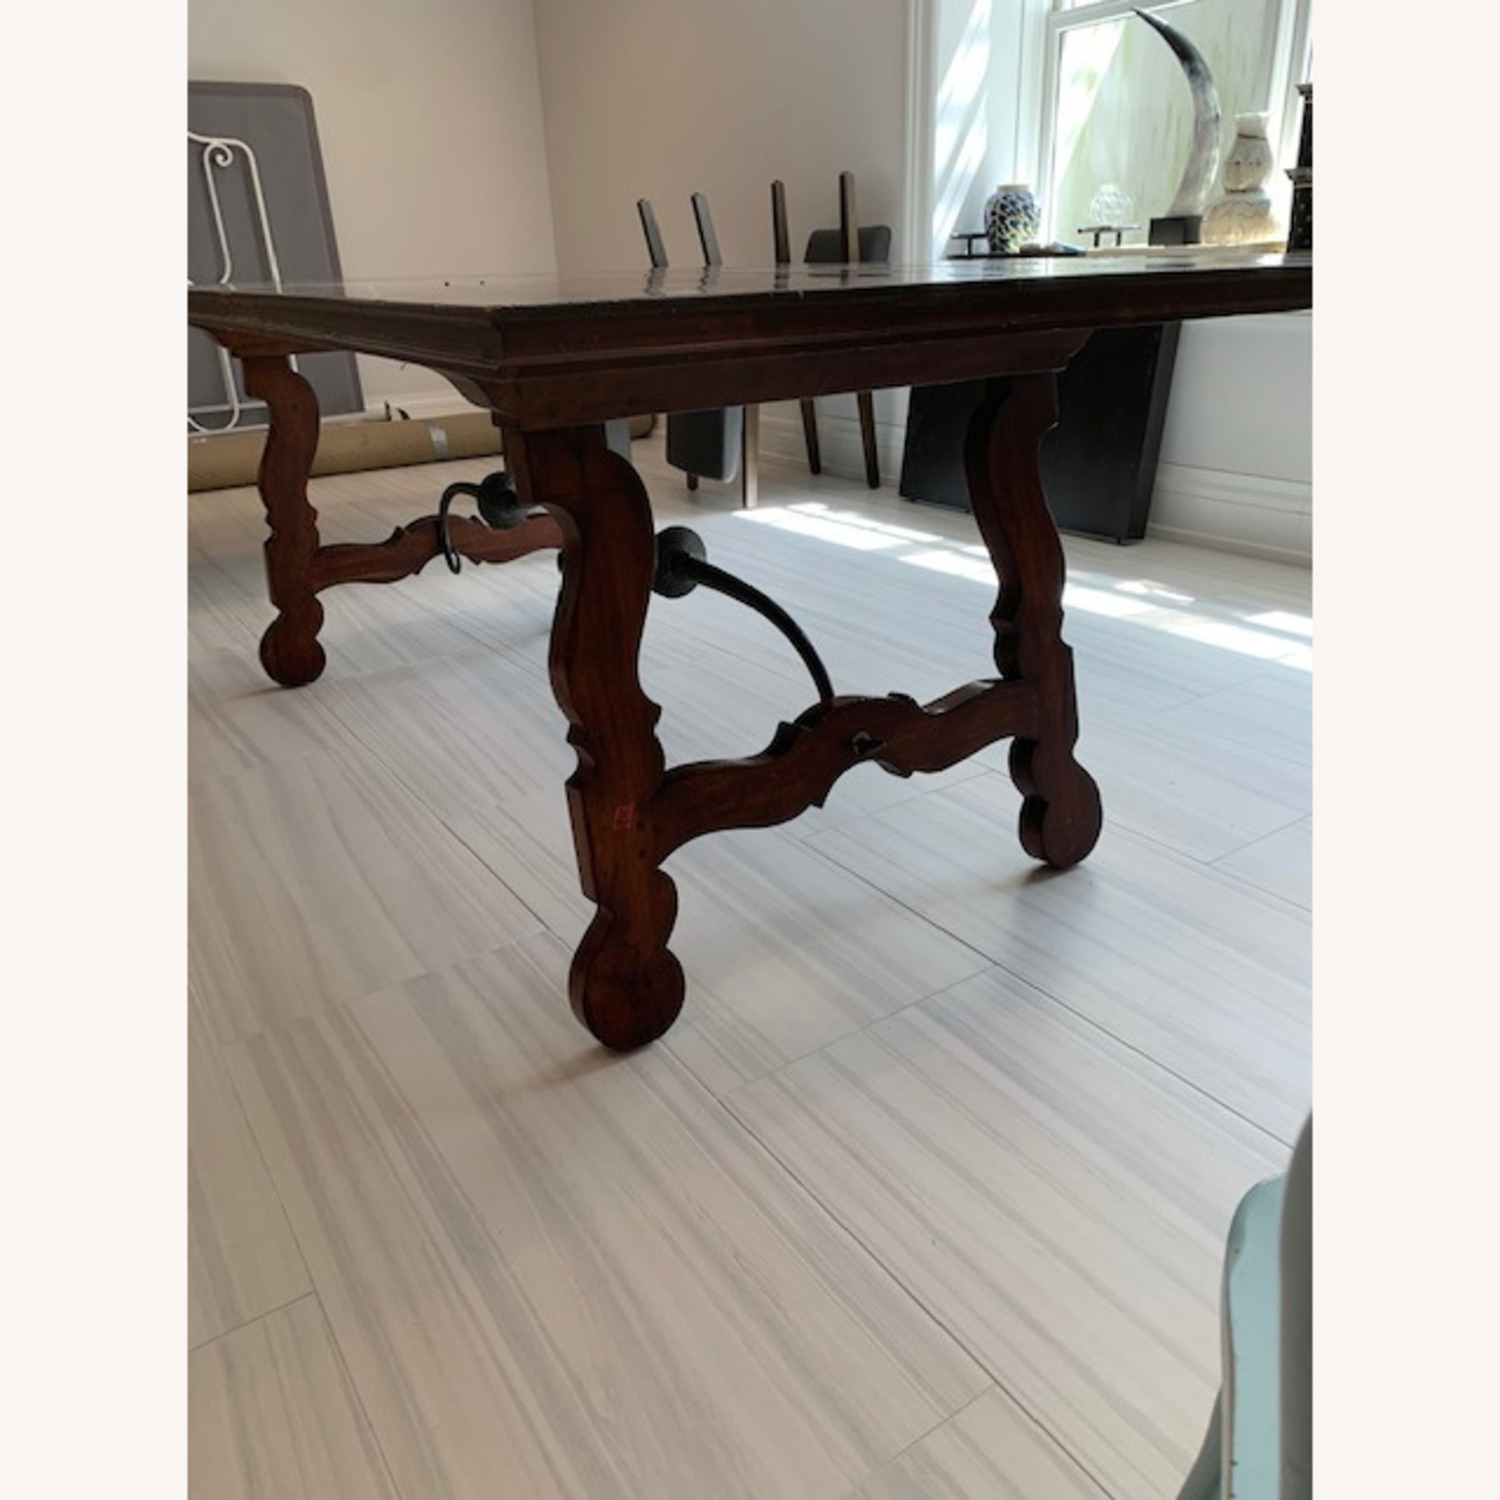 Spanish Style Farm Trestle Table with Forged Steel - image-3